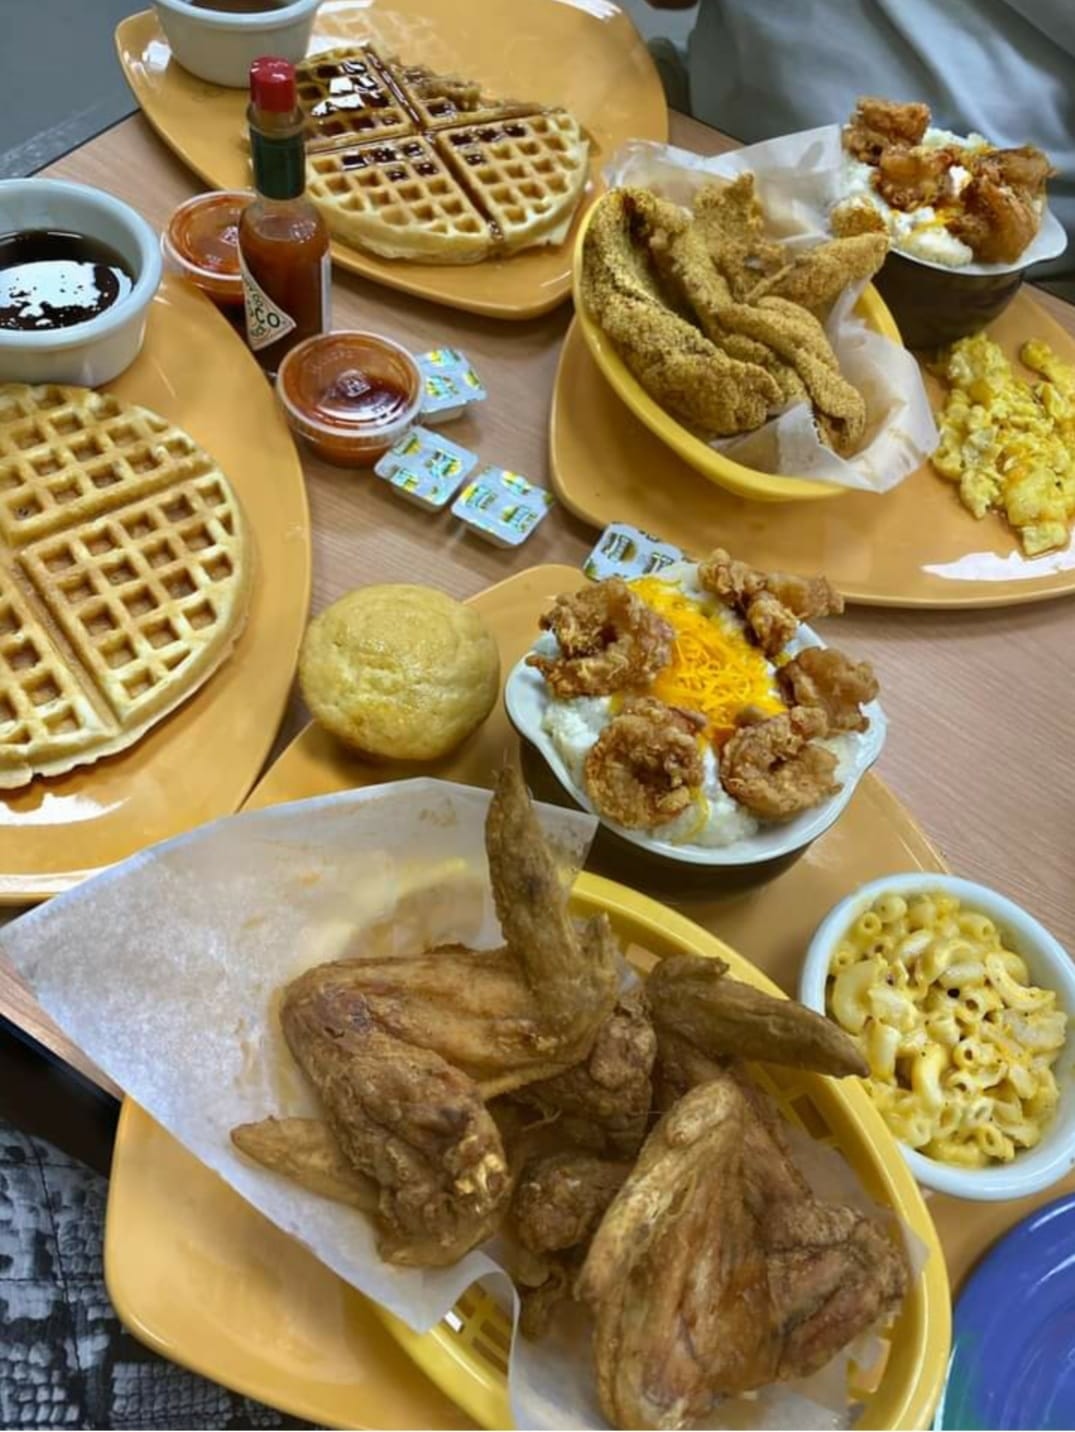 Chicken and waffle dishes